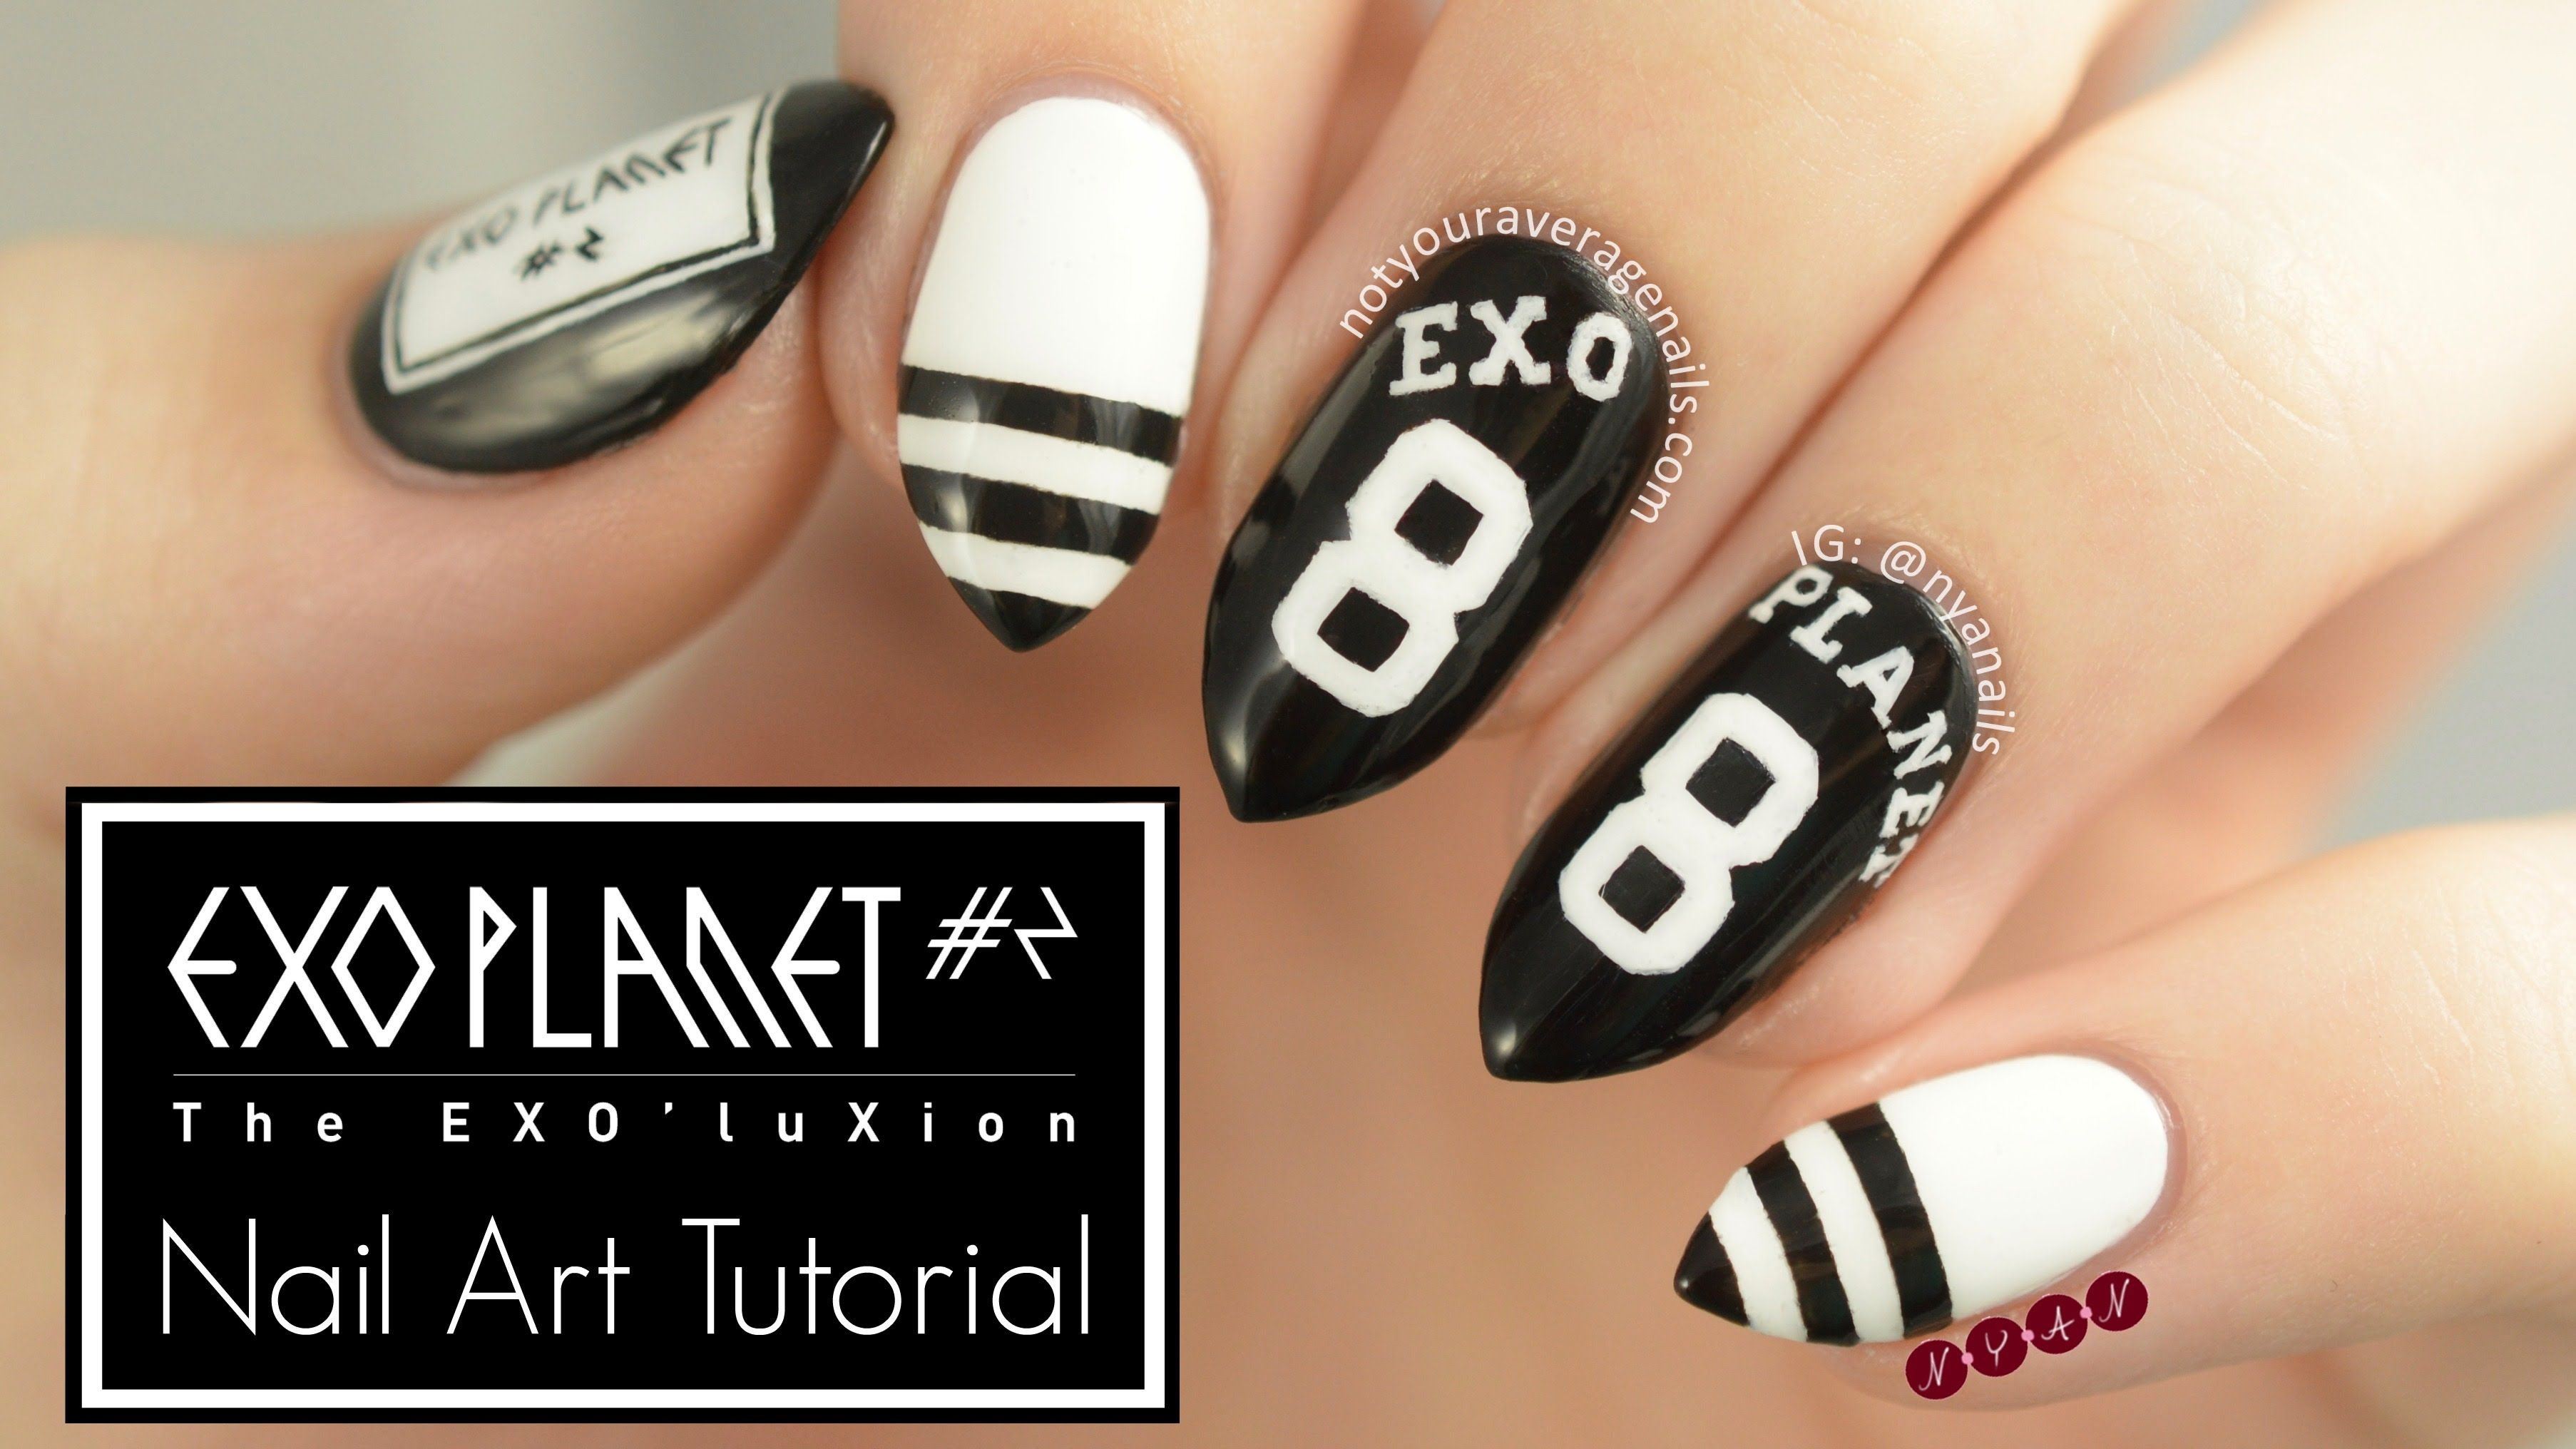 Exoluxion nail art tutorial by not your average nails nail art exoluxion nail art tutorial by not your average nails prinsesfo Image collections